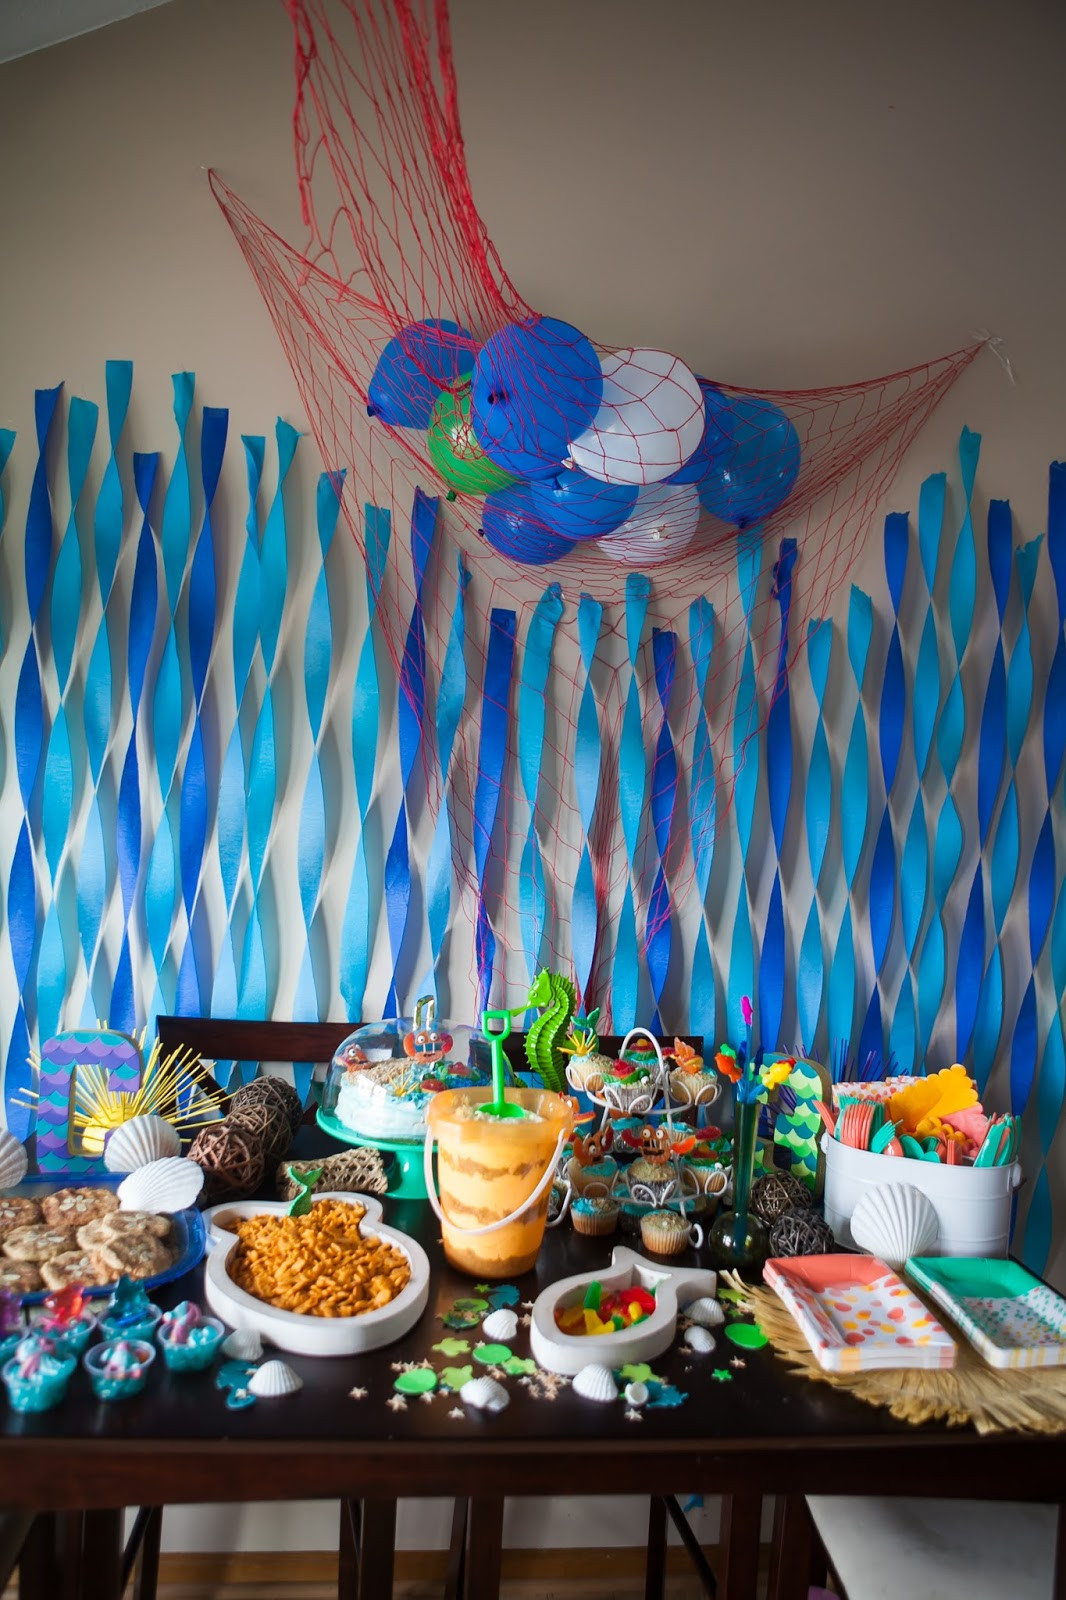 Beach Party Theme Ideas  You Are My Licorice Carys s Third Birthday Under the Sea